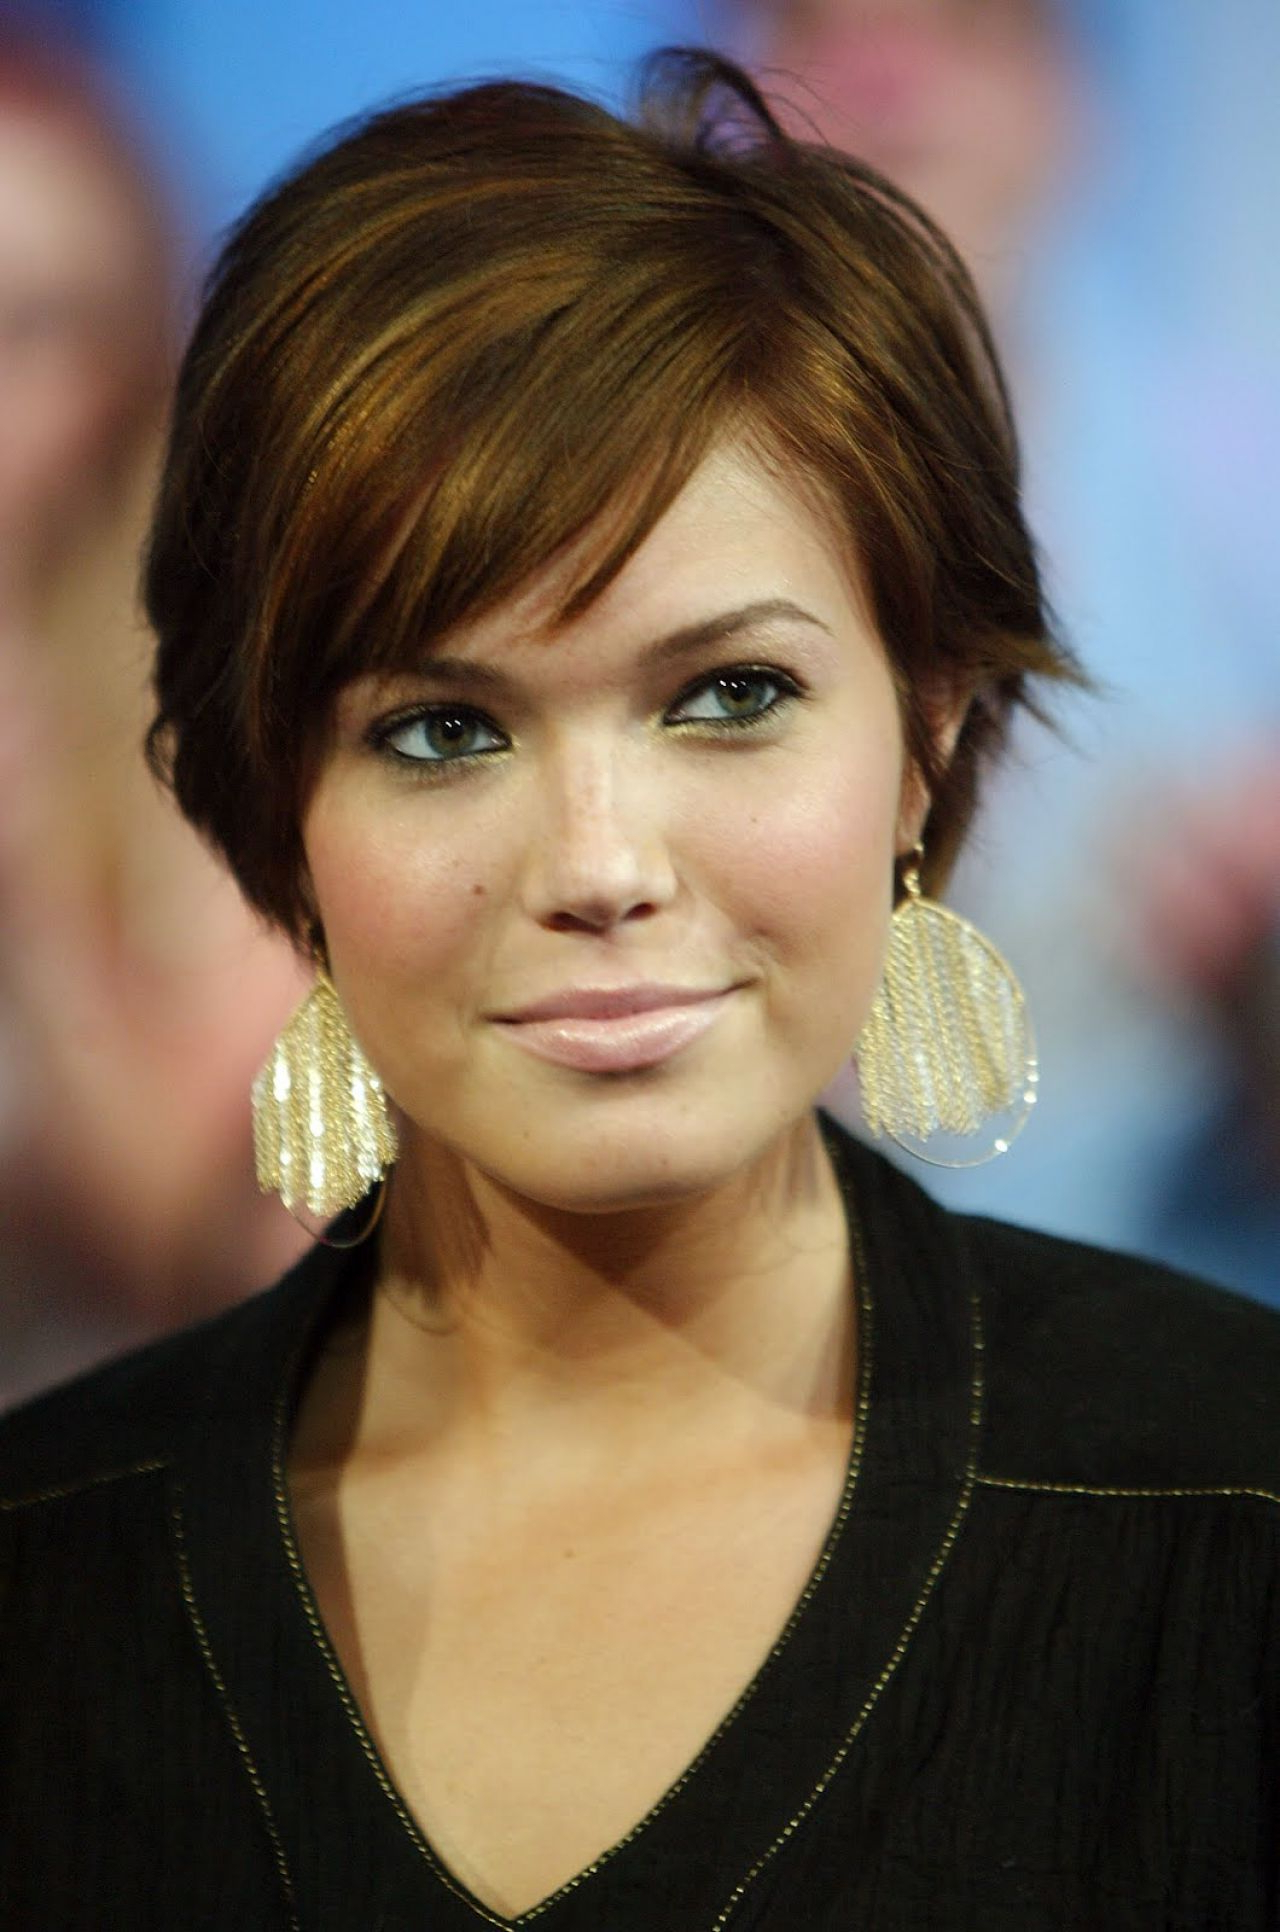 Short Hairstyles For Square Faces Female – Google Search With Regard To Short Haircuts For Big Round Face (View 9 of 25)